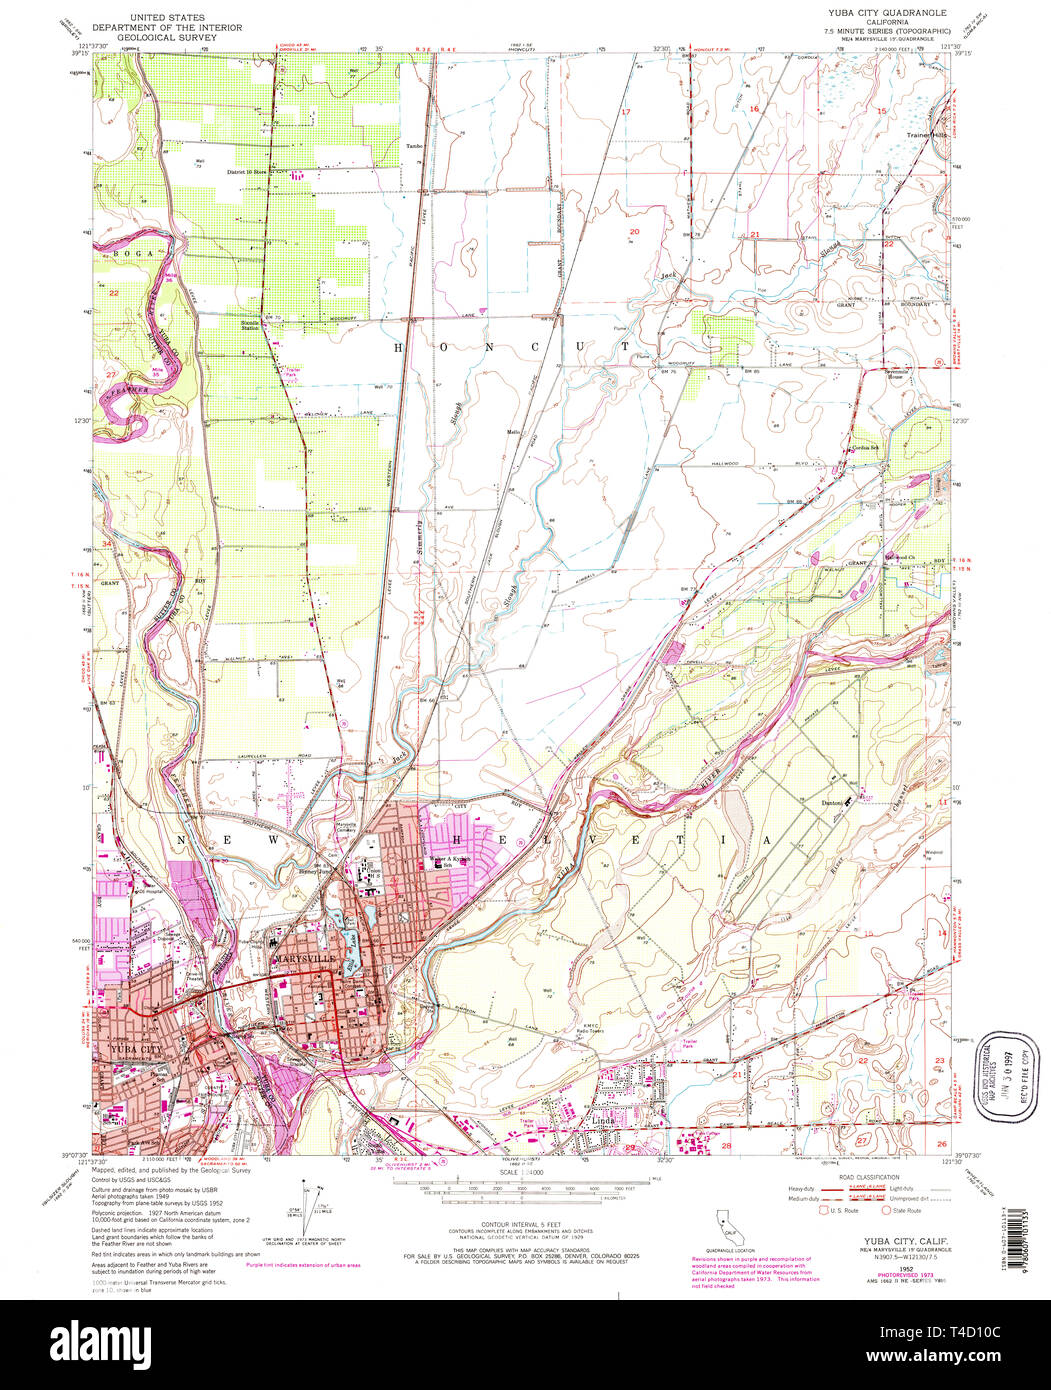 Map Of California Yuba City.Usgs Topo Map California Ca Yuba City 301478 1952 24000 Restoration